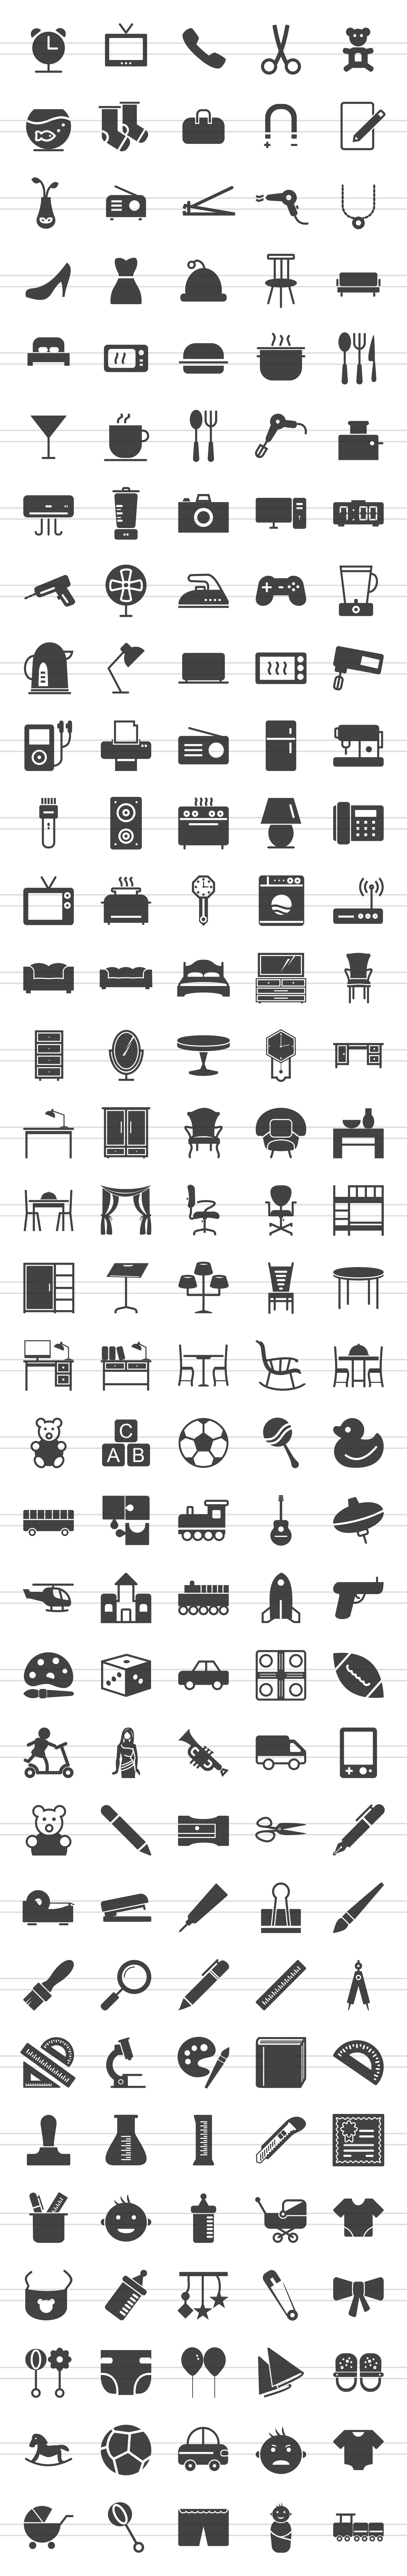 166 Objects Glyph Icons example image 2